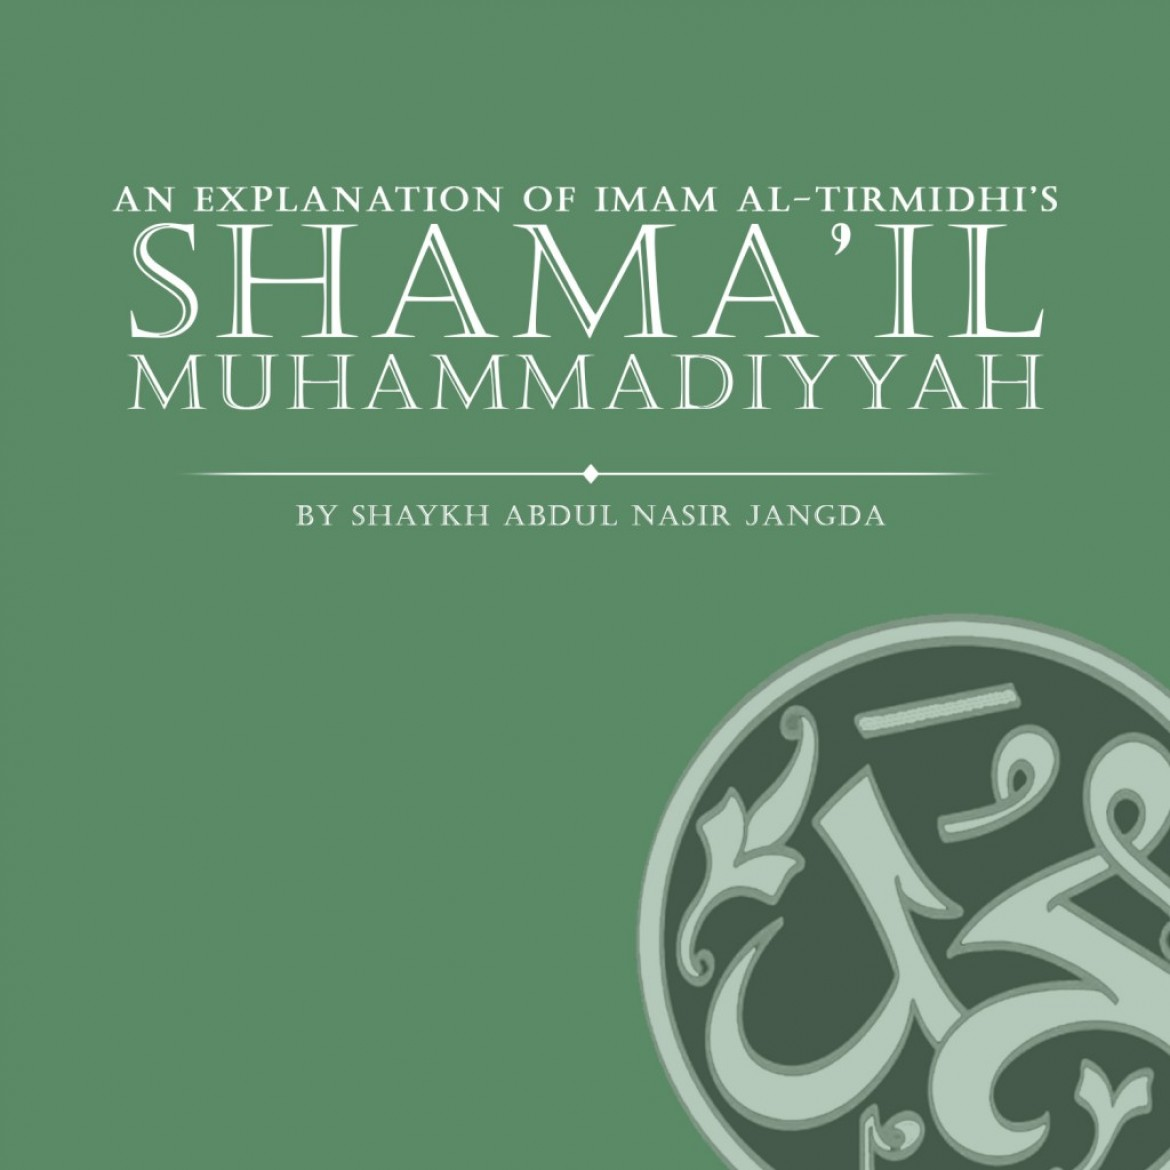 Shamail Muhammadiyah – Seeing The Messenger pbuh in a Dream